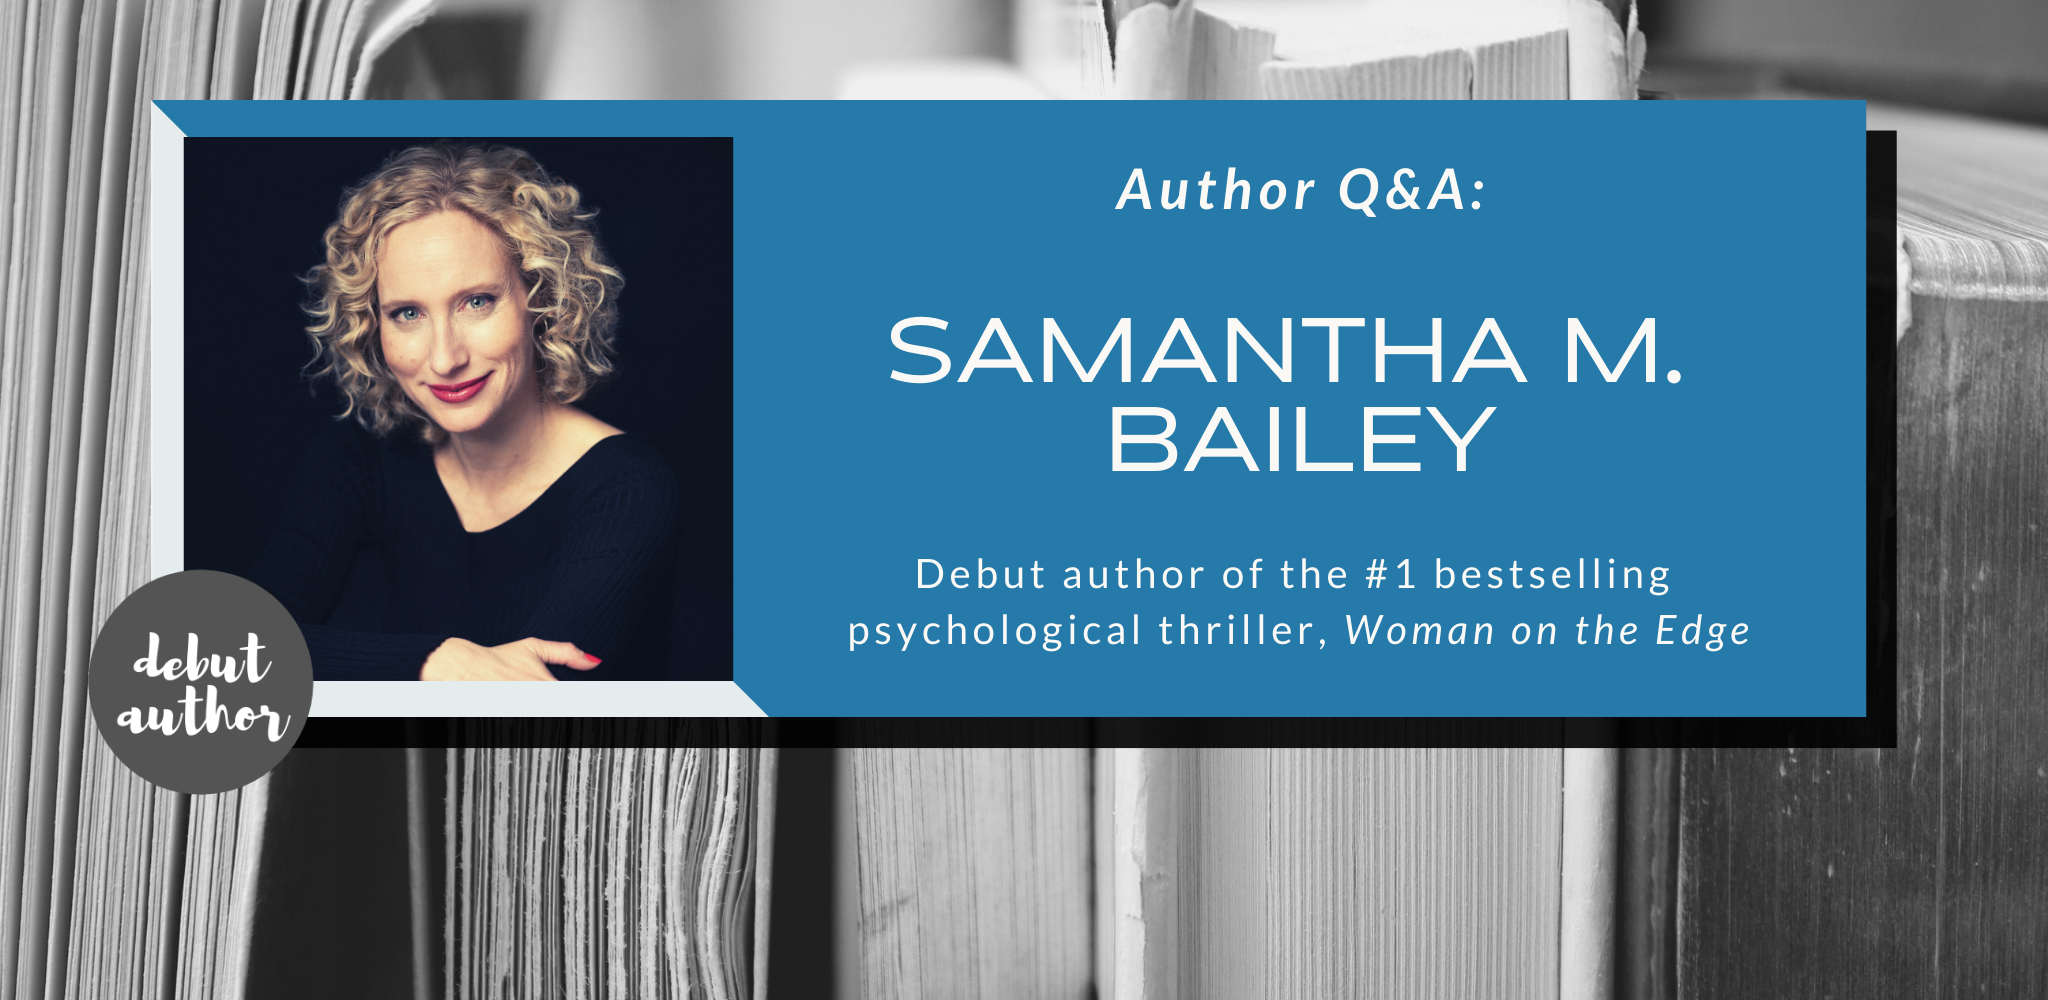 Q&A with Samantha M. Bailey